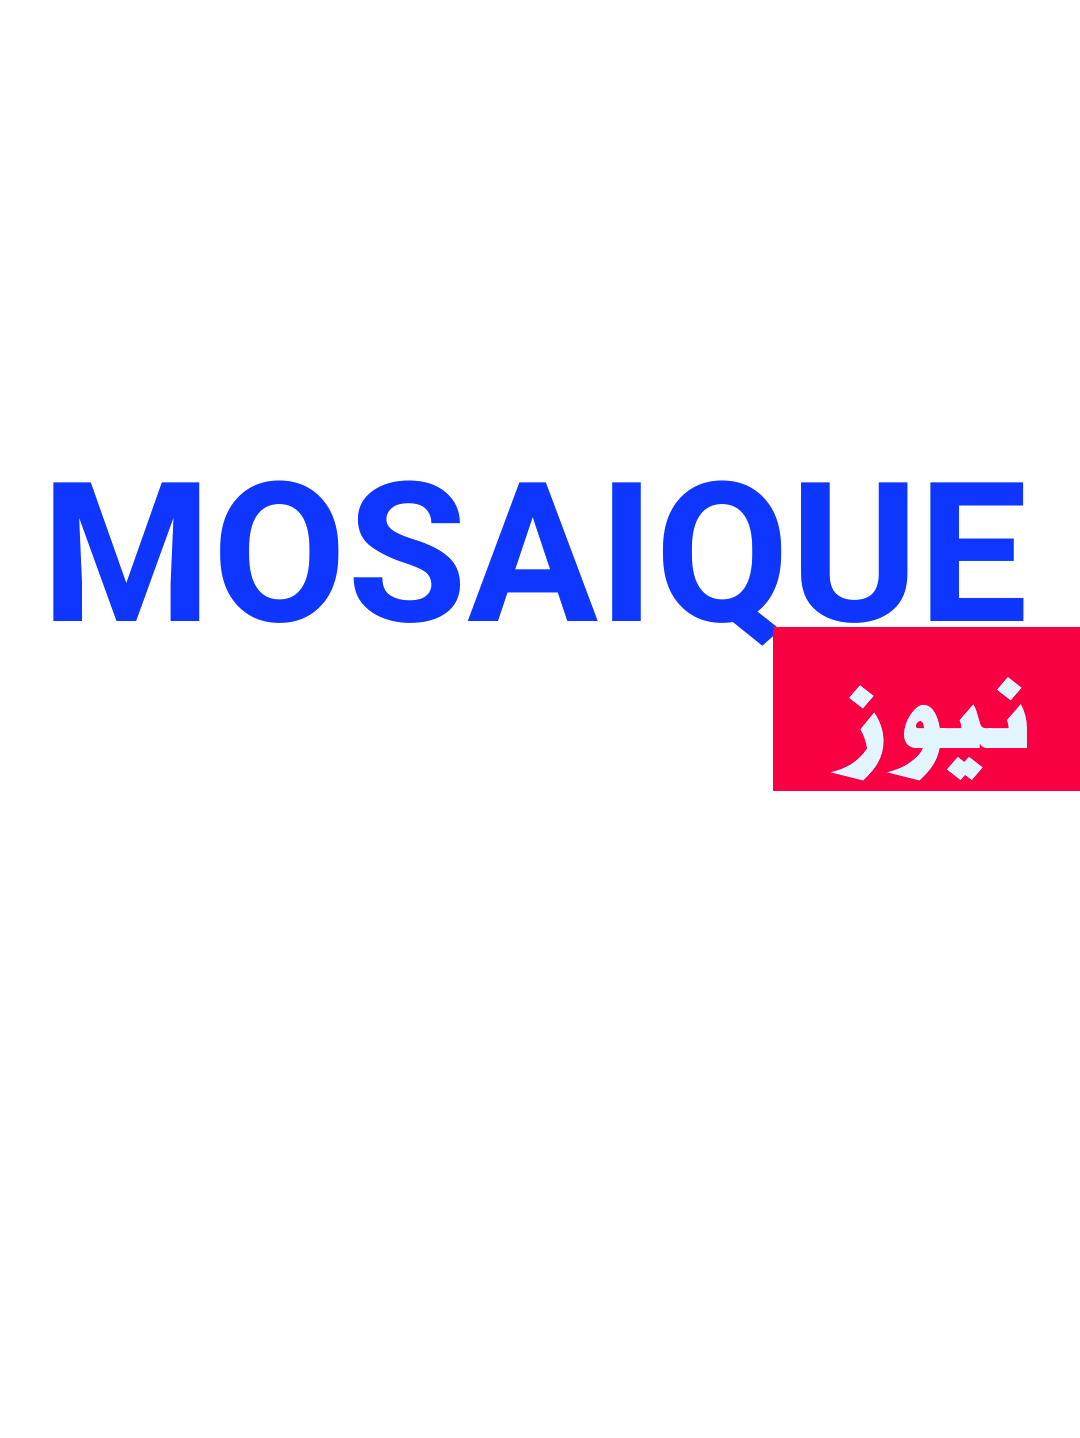 mosaique news - موزاييك نيوز